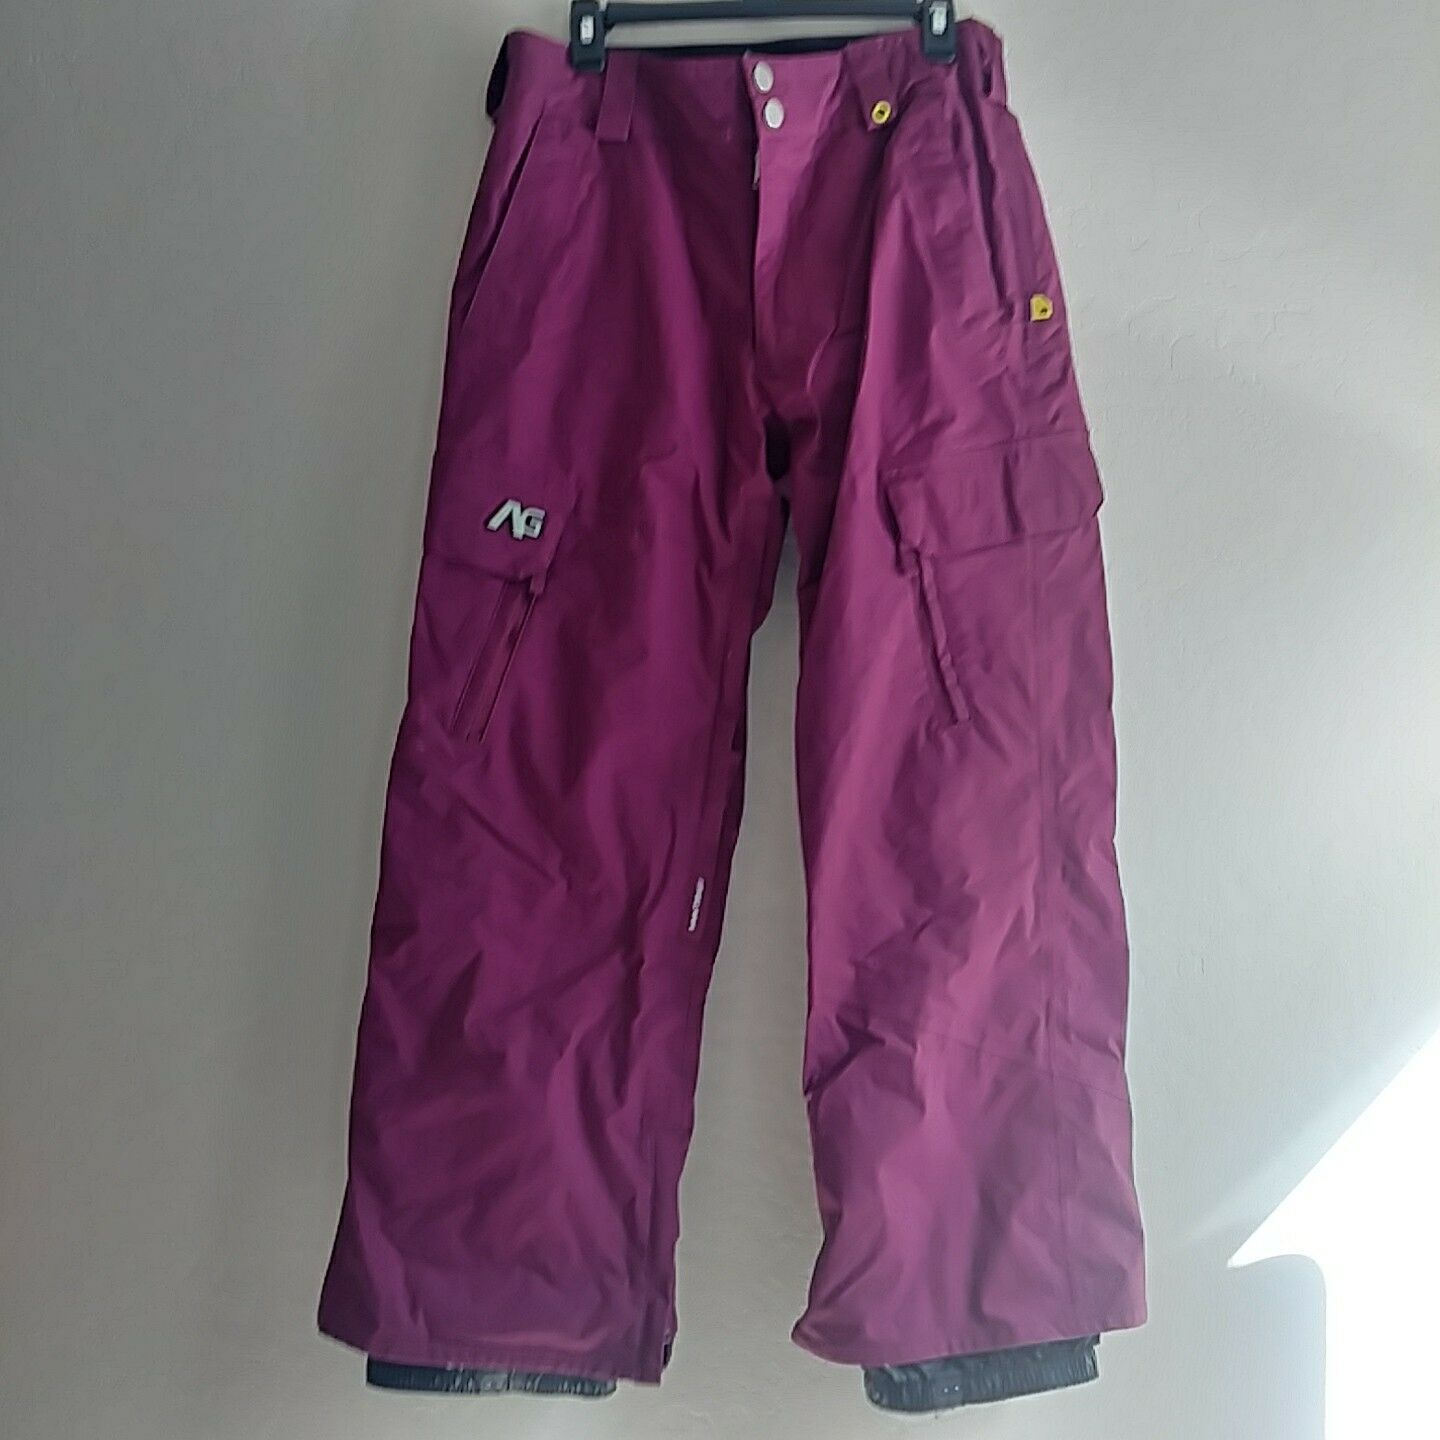 Analog Syd Ski Snowboard Pant Pink Fushia Small 10K Waterproof Breathable  190